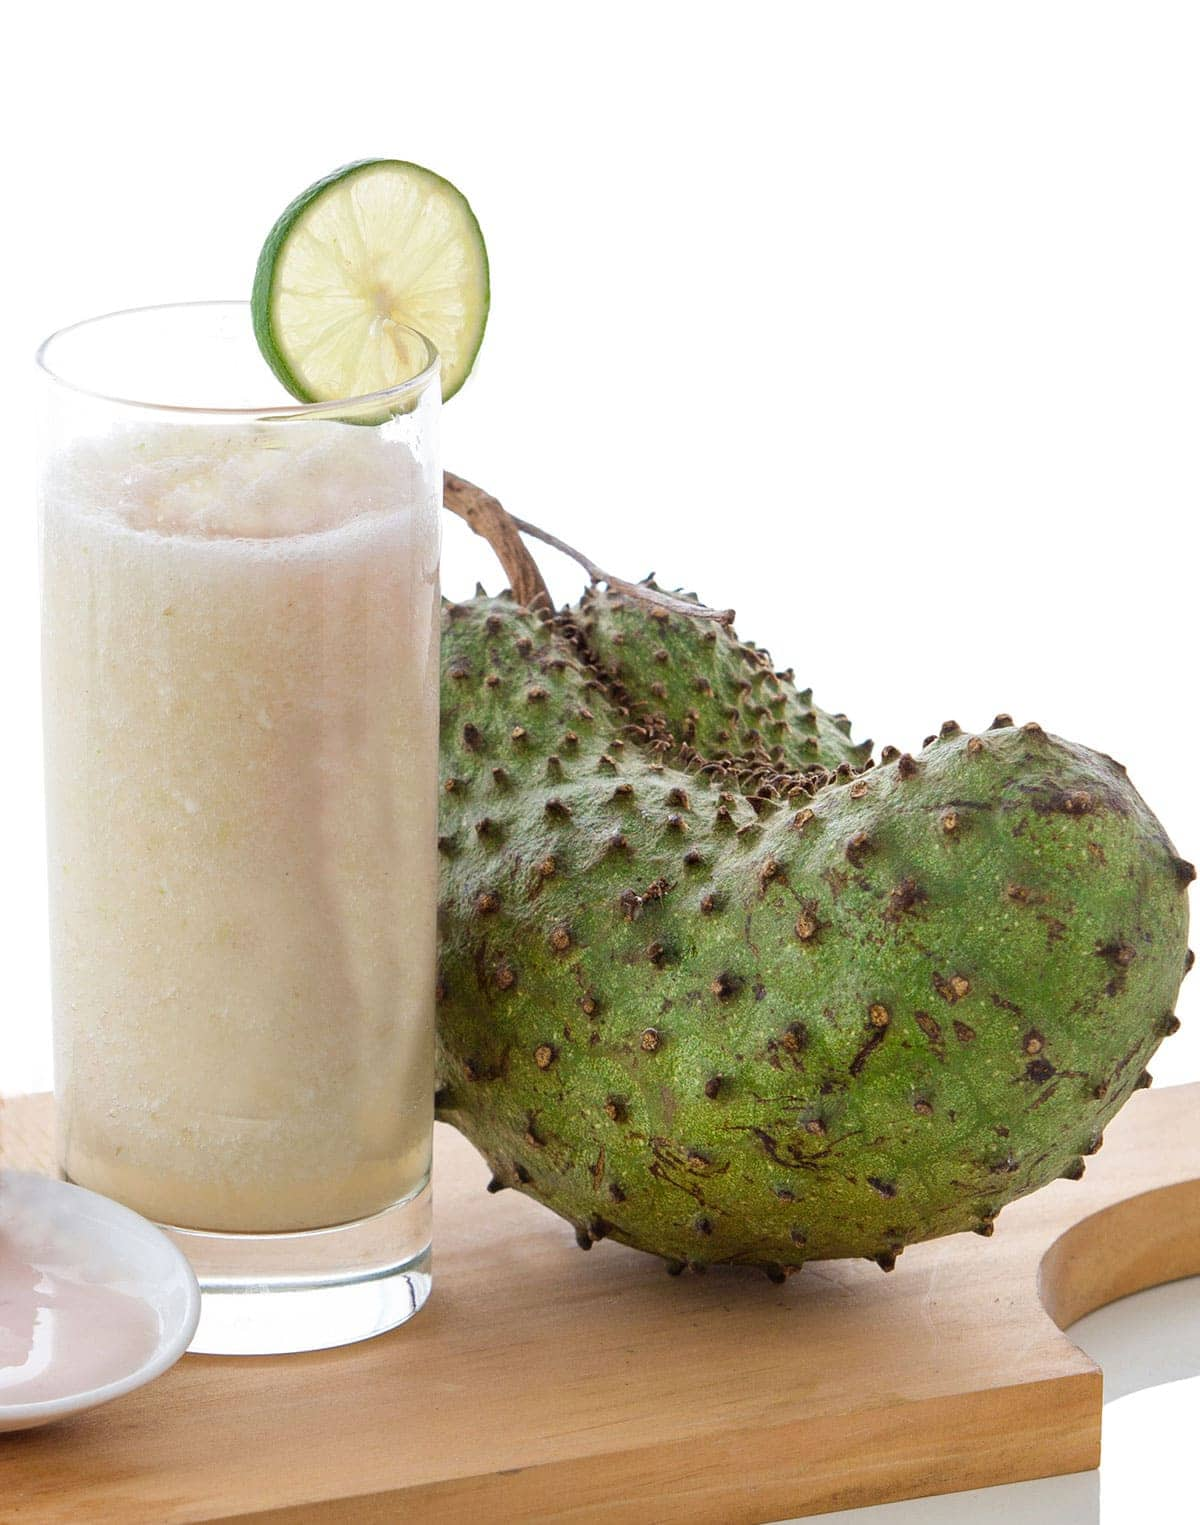 sour sop juice in a glass with a slice of lime, a whole soursop on a cutting board